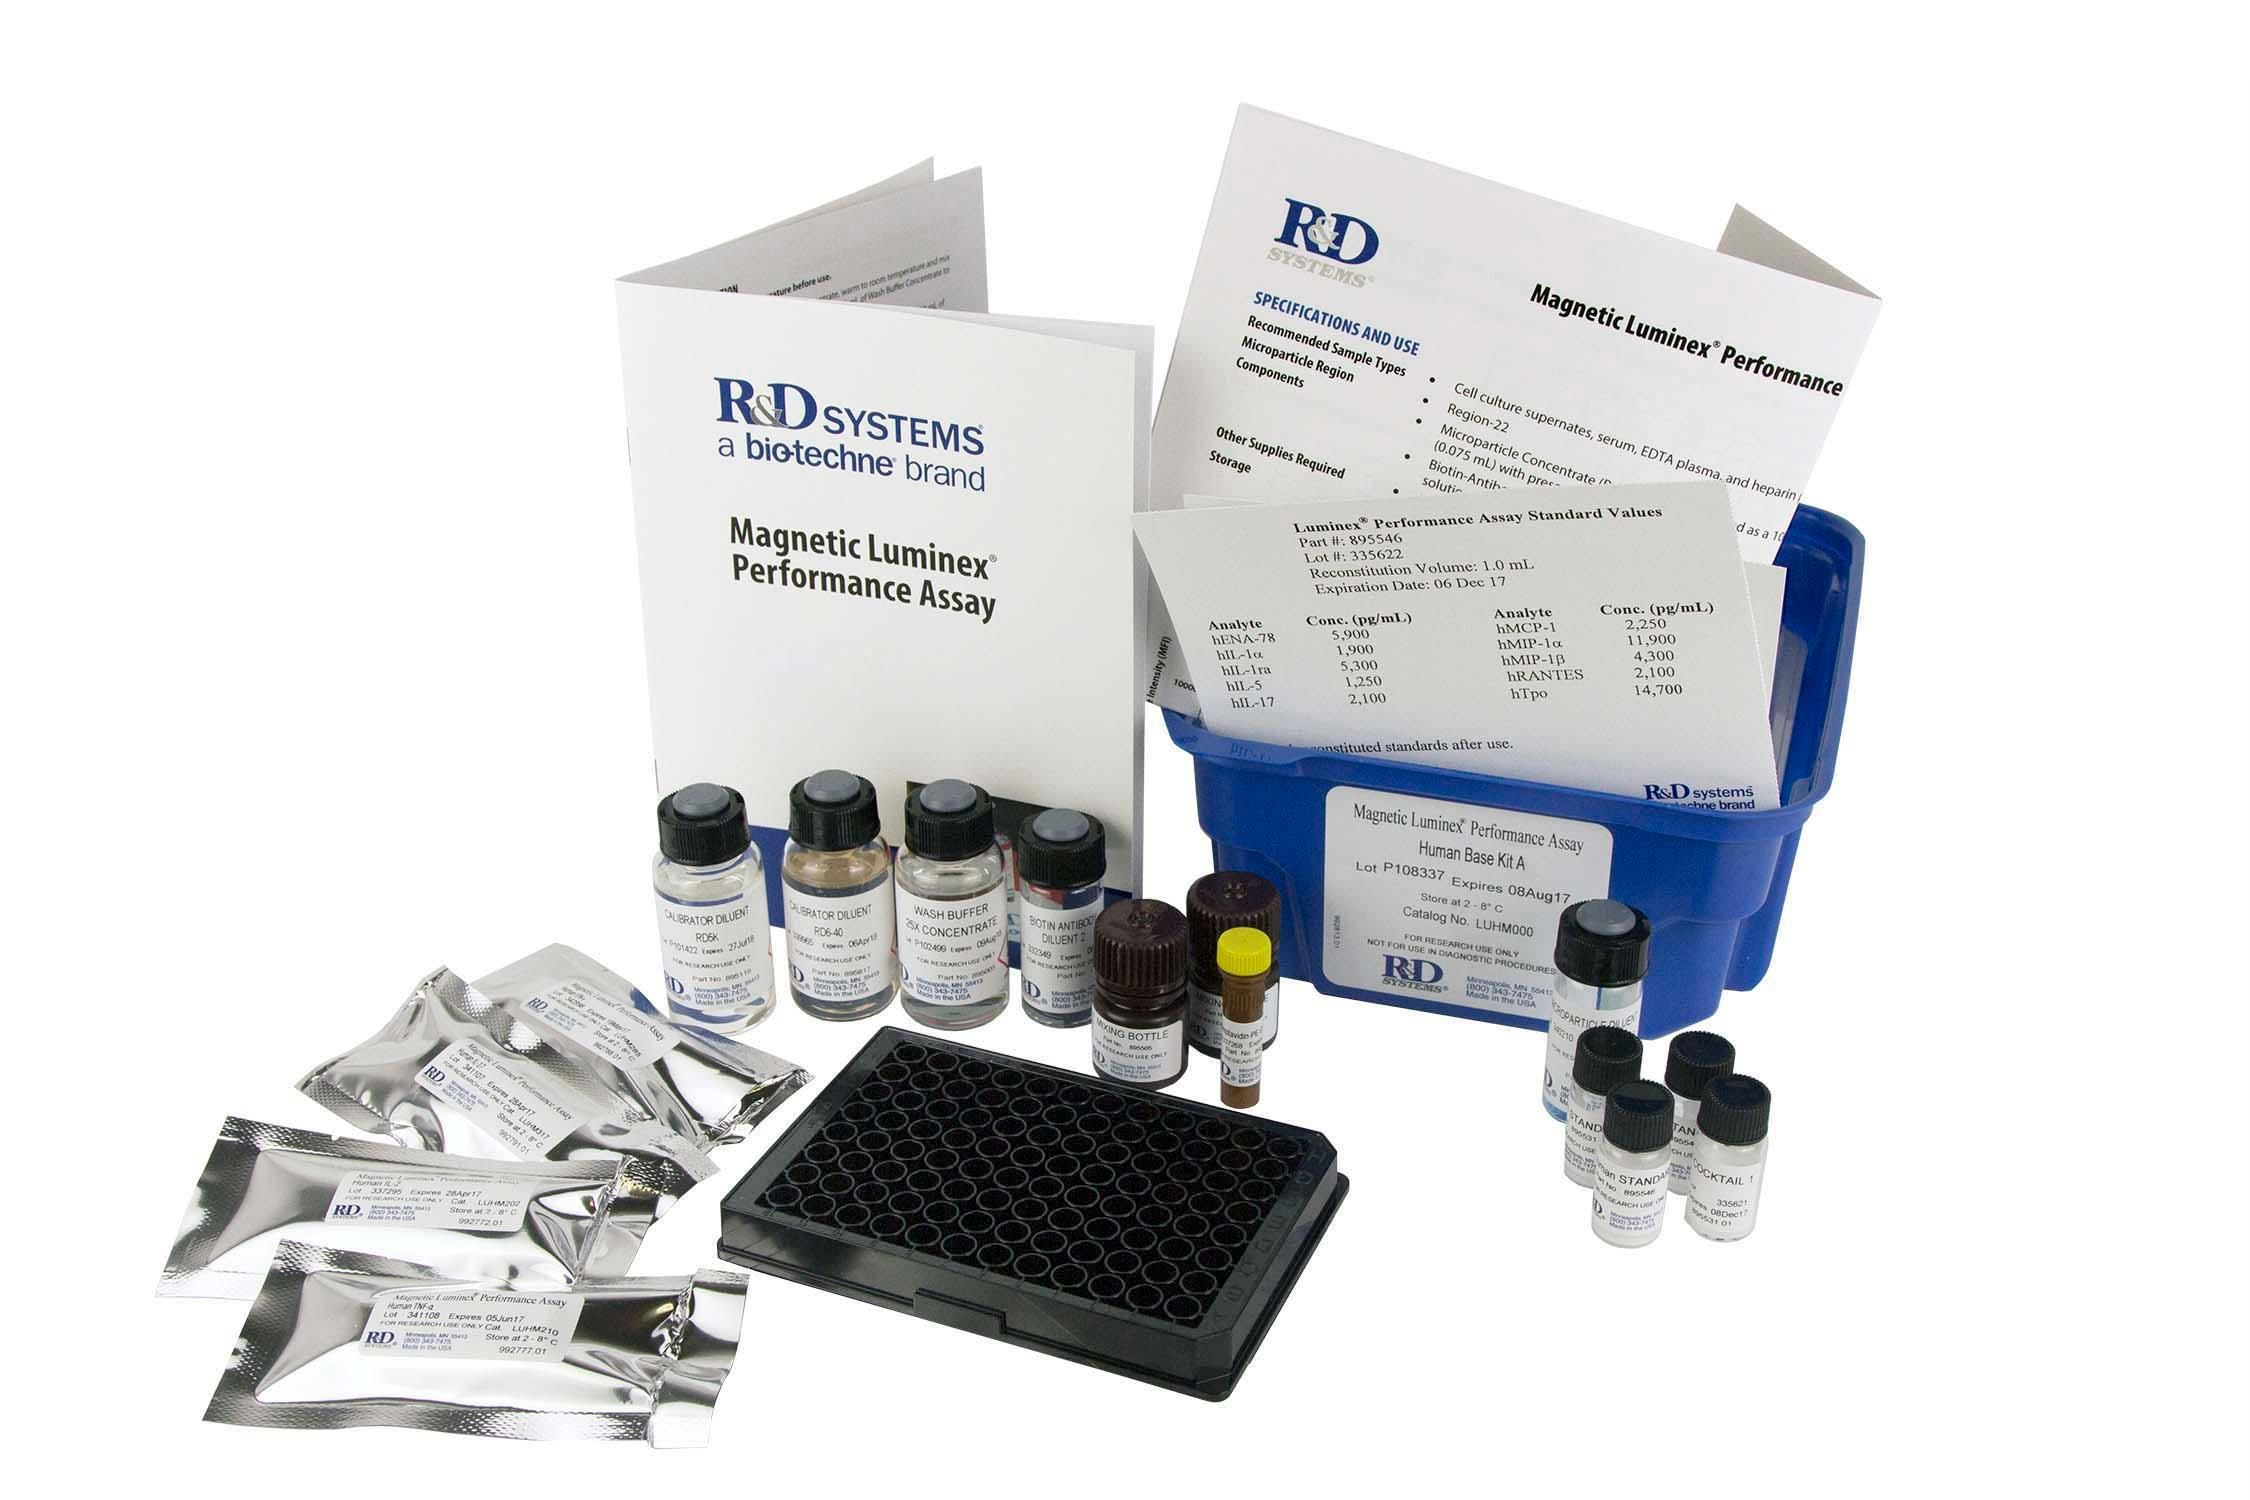 R&D Systems: TGF-beta Premixed Magnetic Luminex Performance Assay